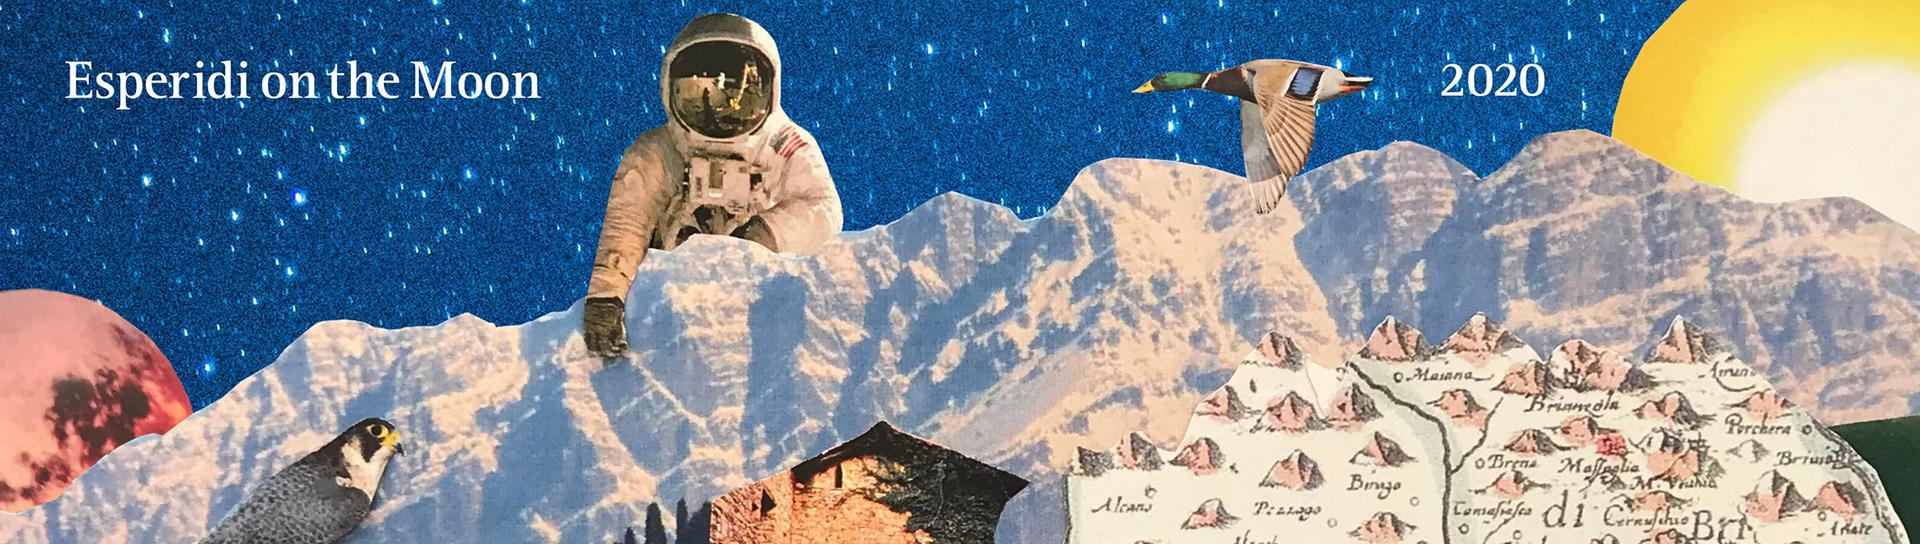 Esperidi on the Moon